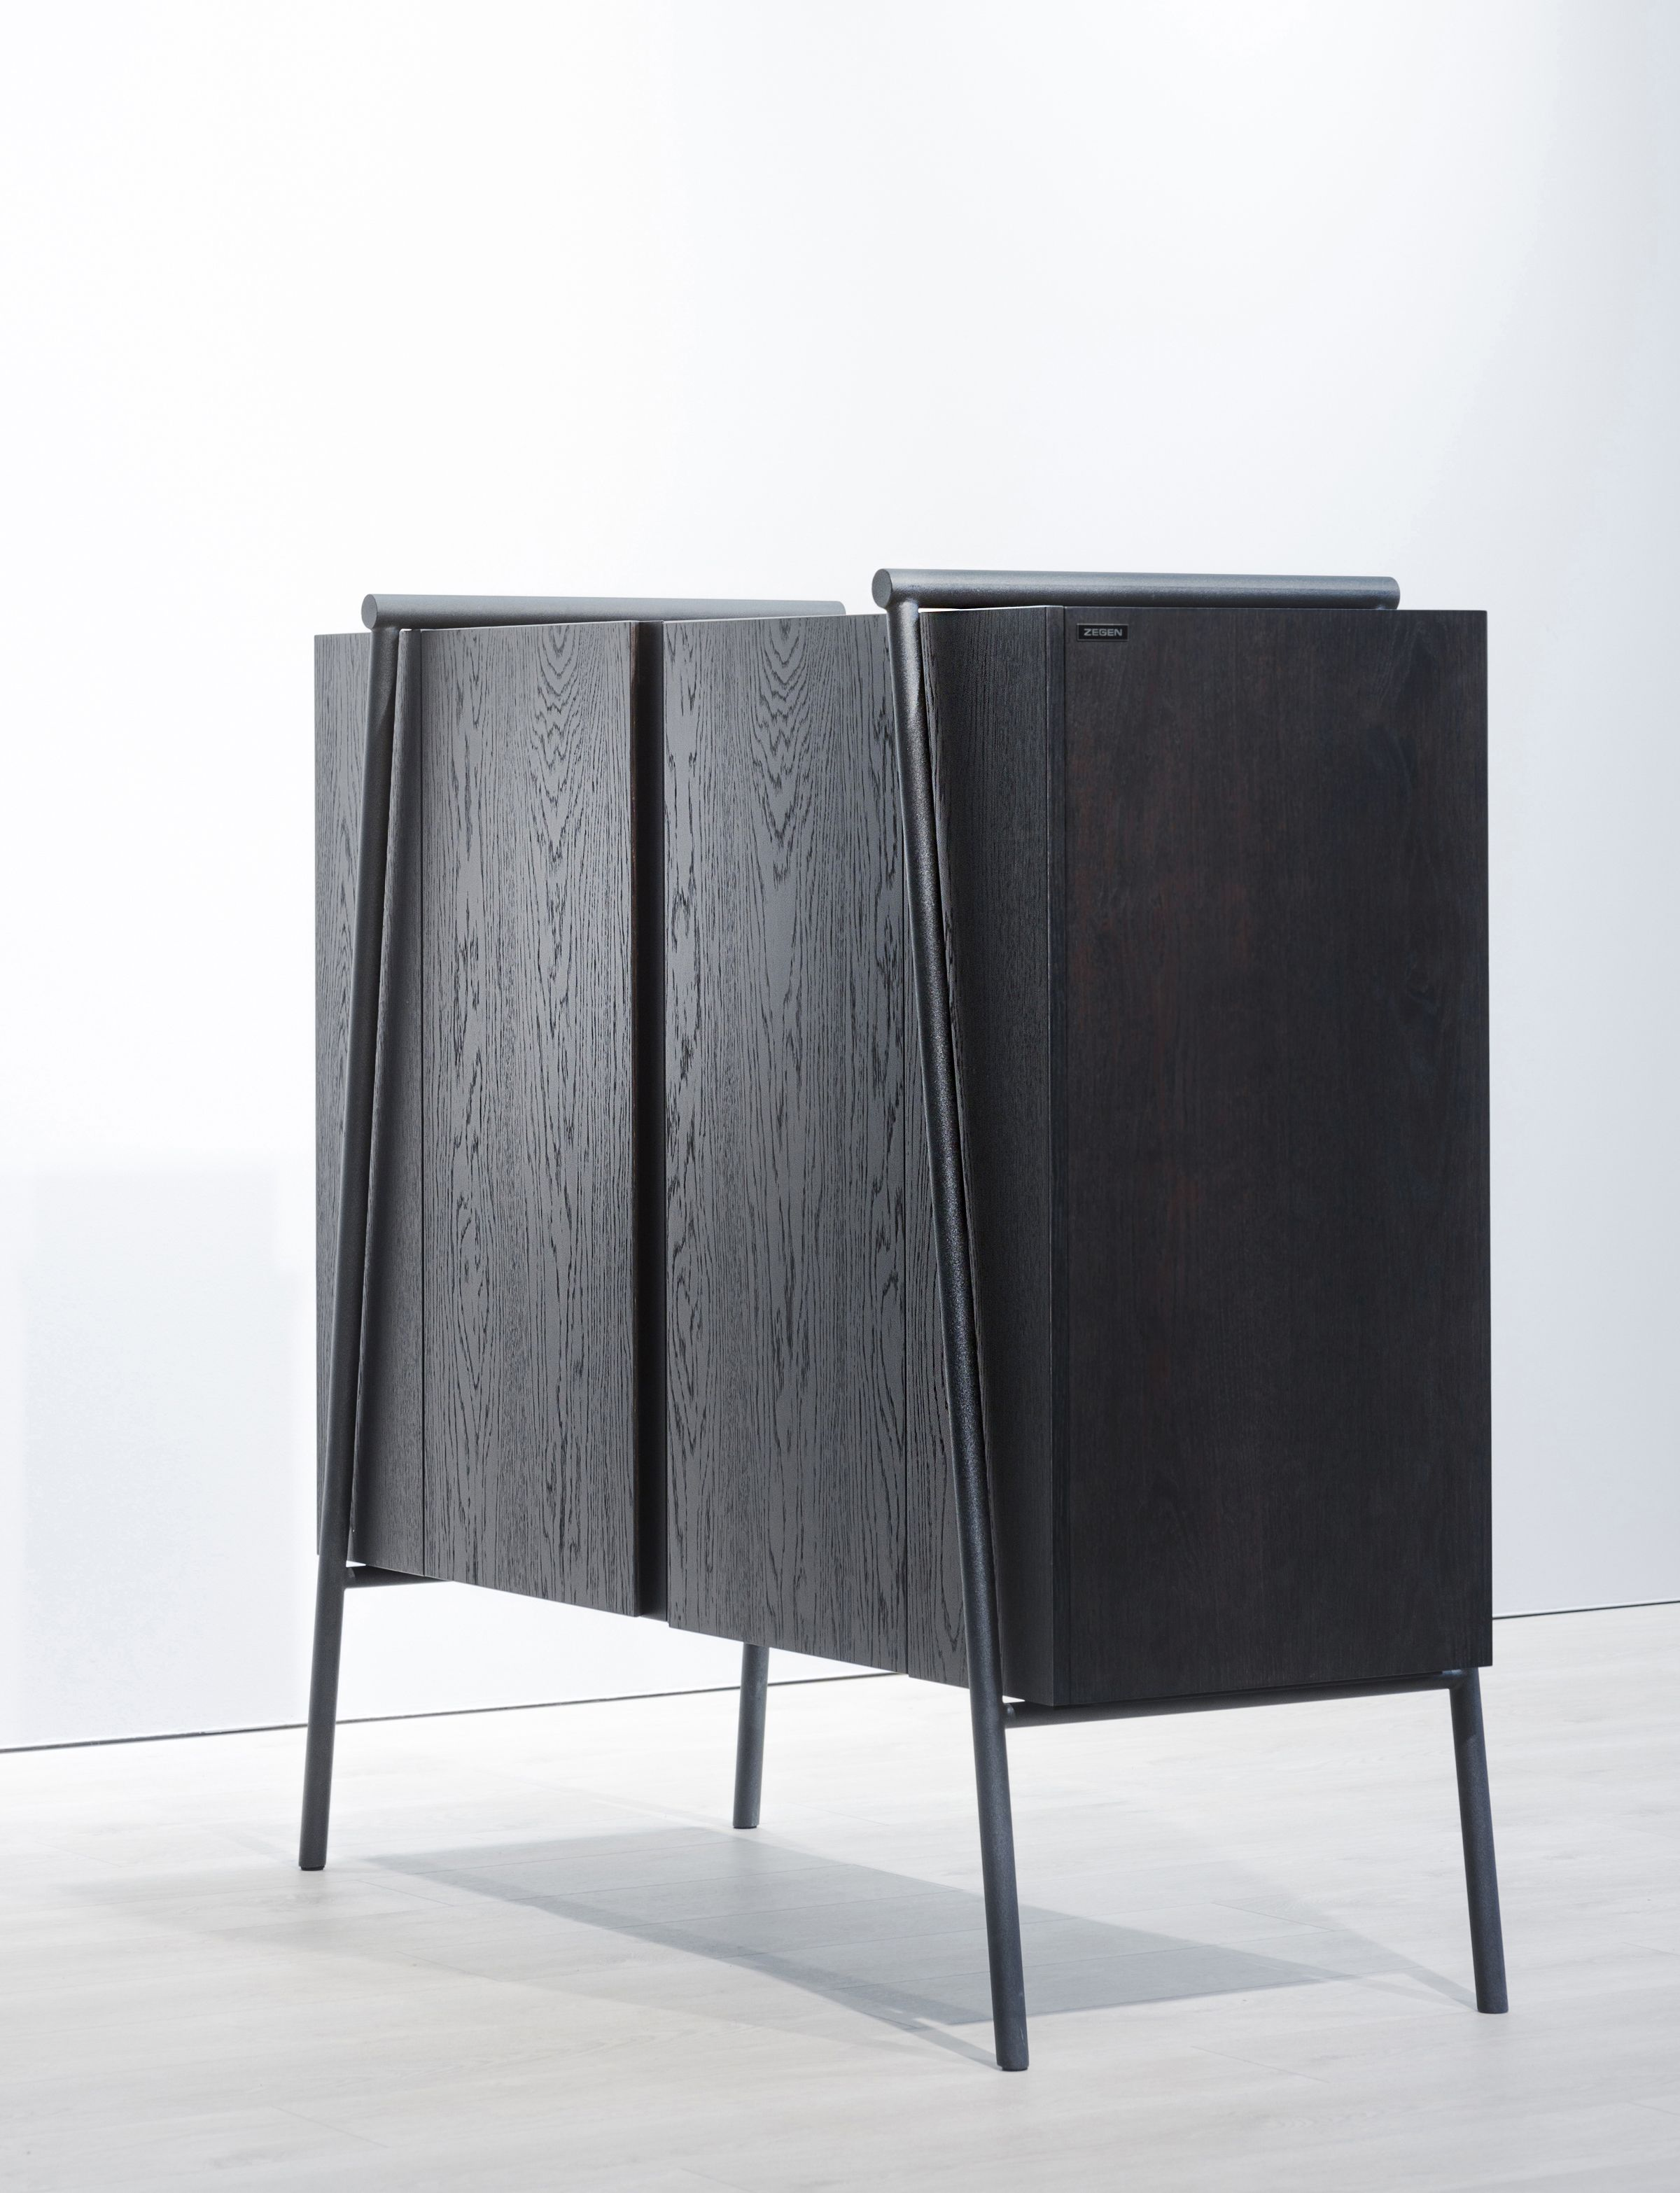 Pin By Justincondon Designer On Objects Furniture Muebles Diseno